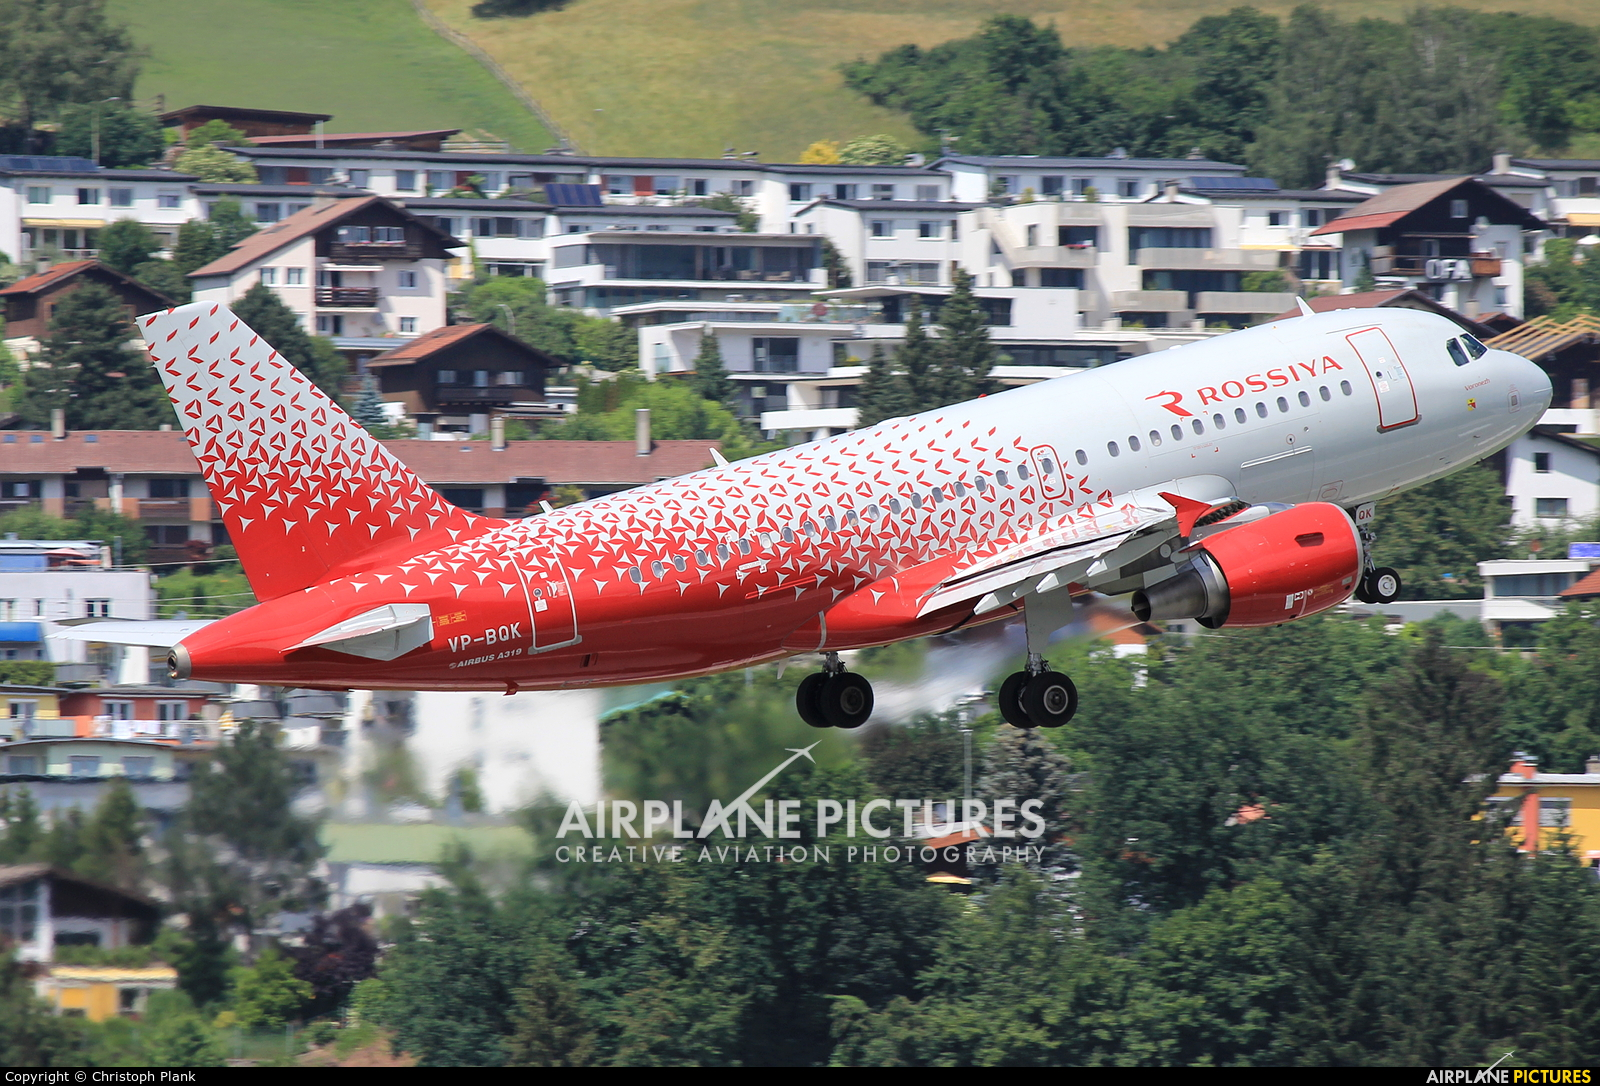 Rossiya VP-BQK aircraft at Innsbruck